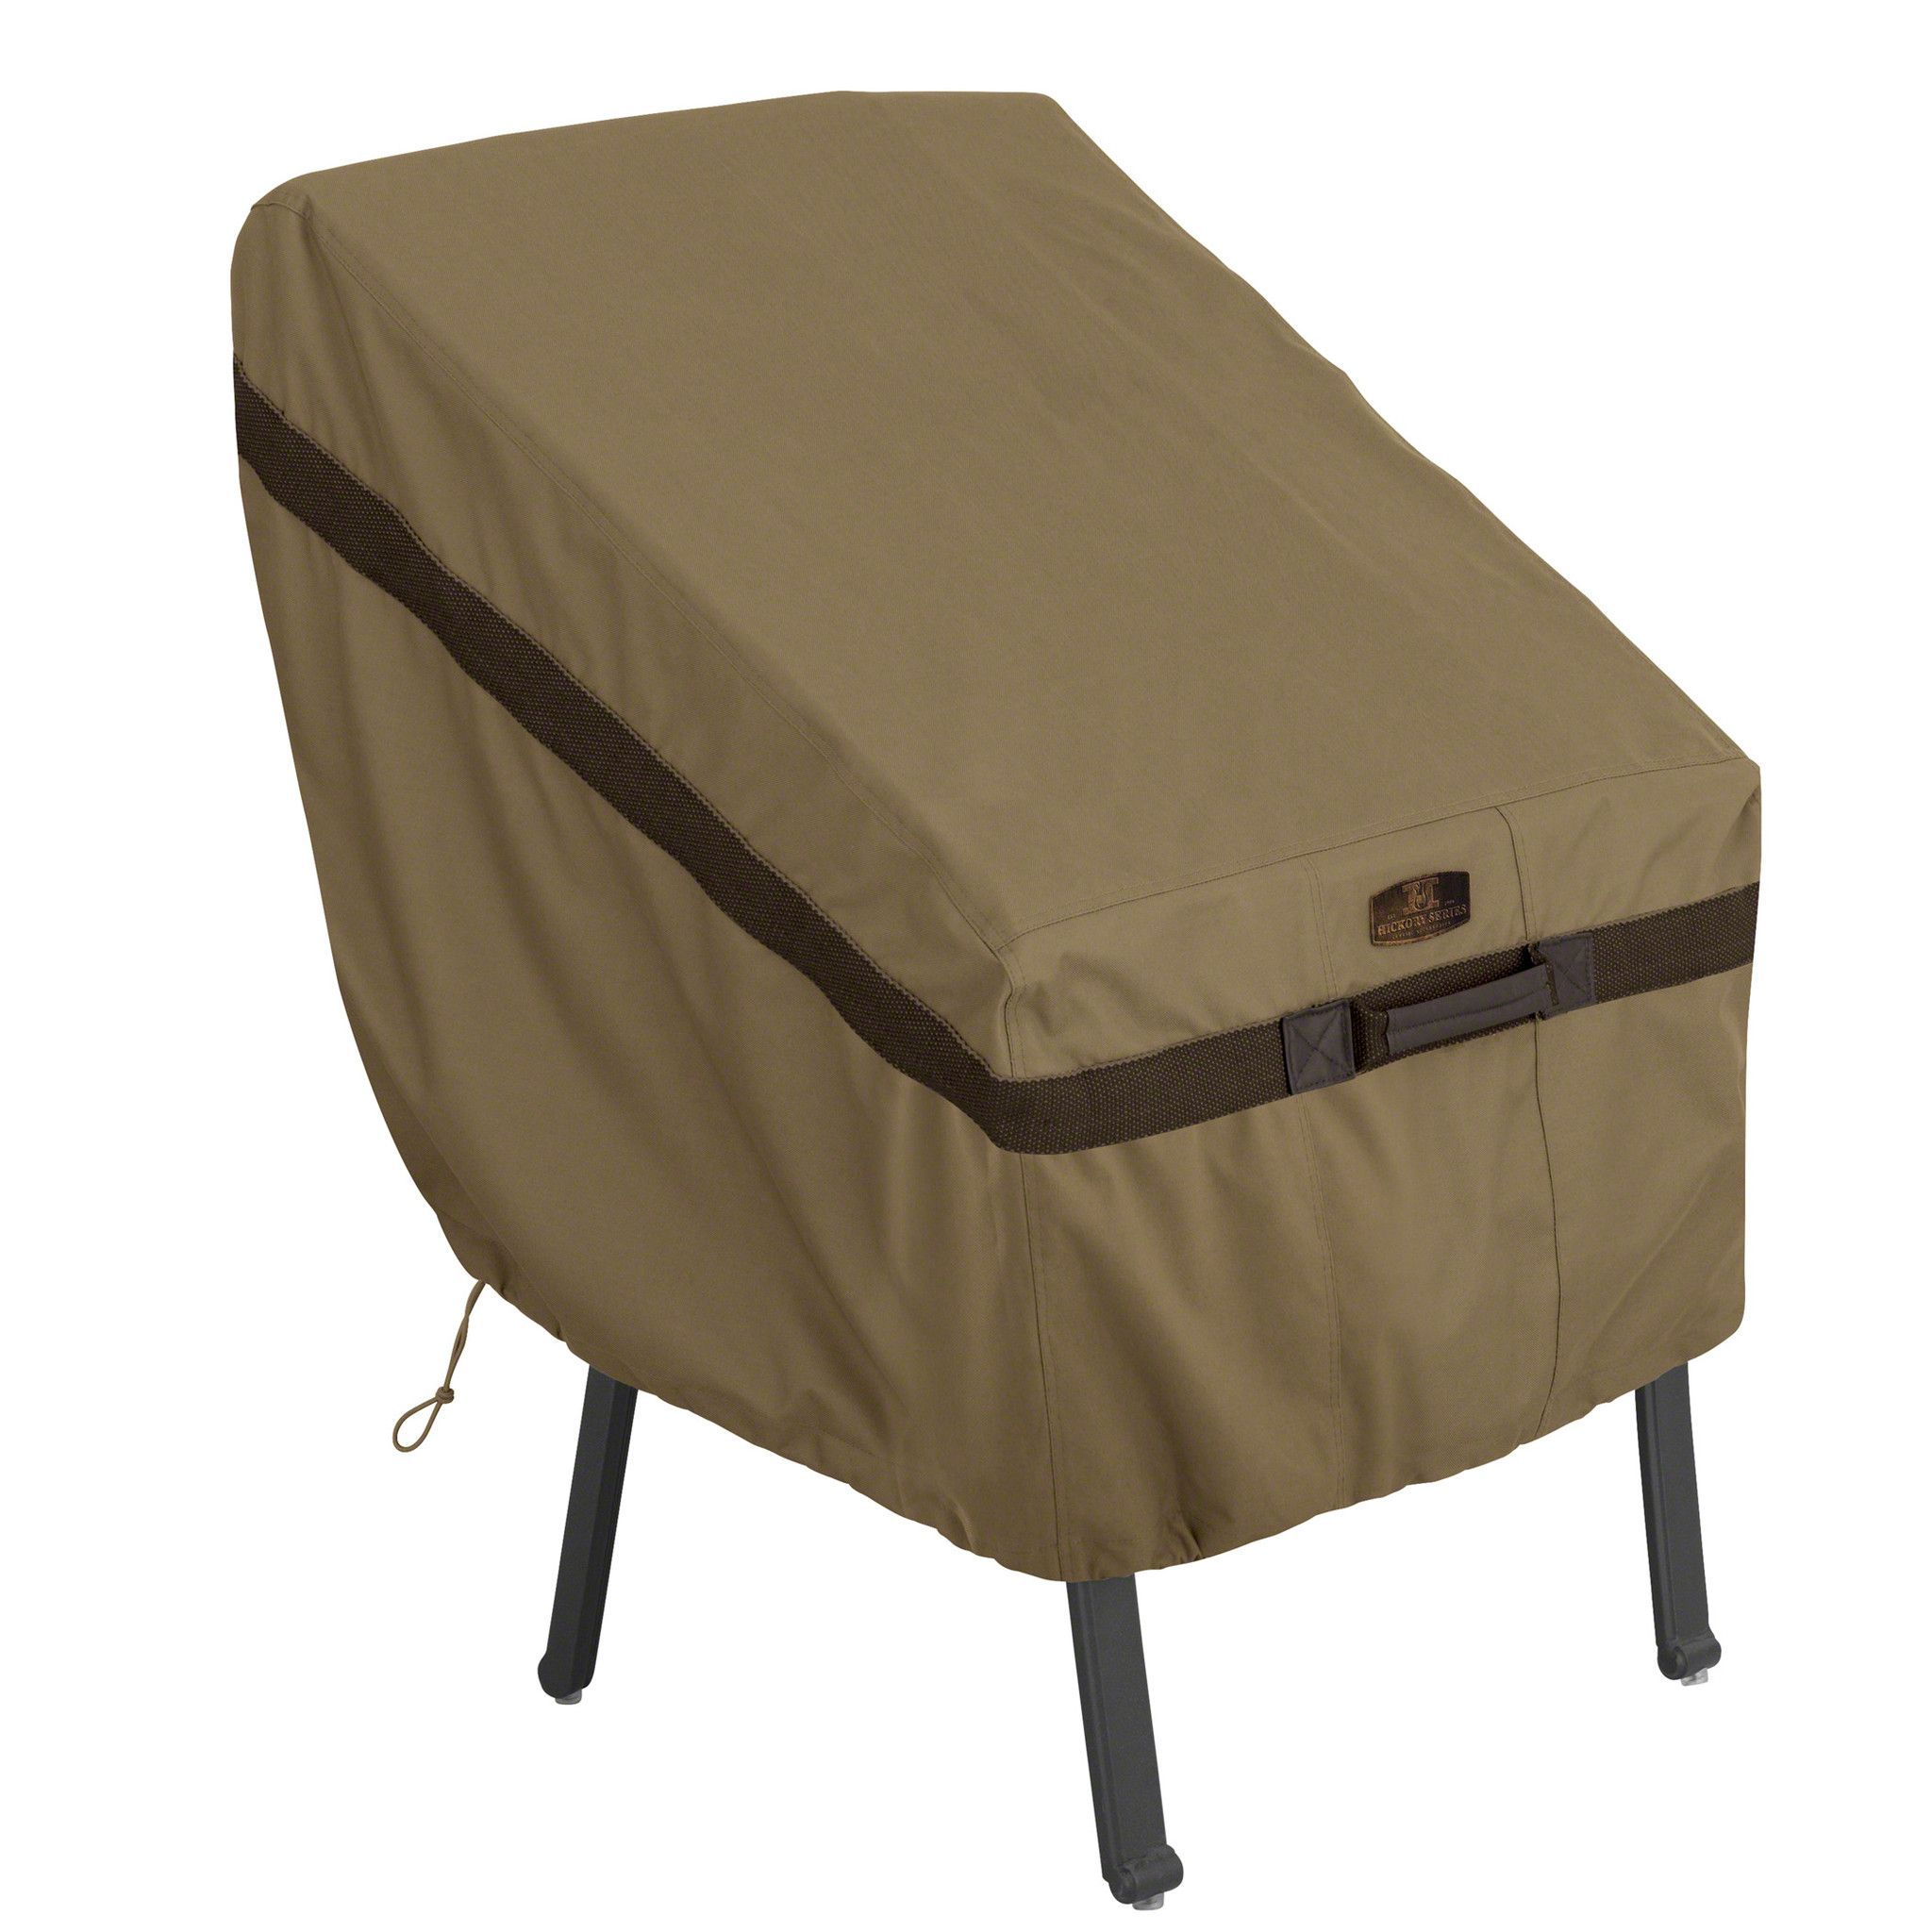 Hickory Heavy Duty Standard Patio Chair Cover Patio